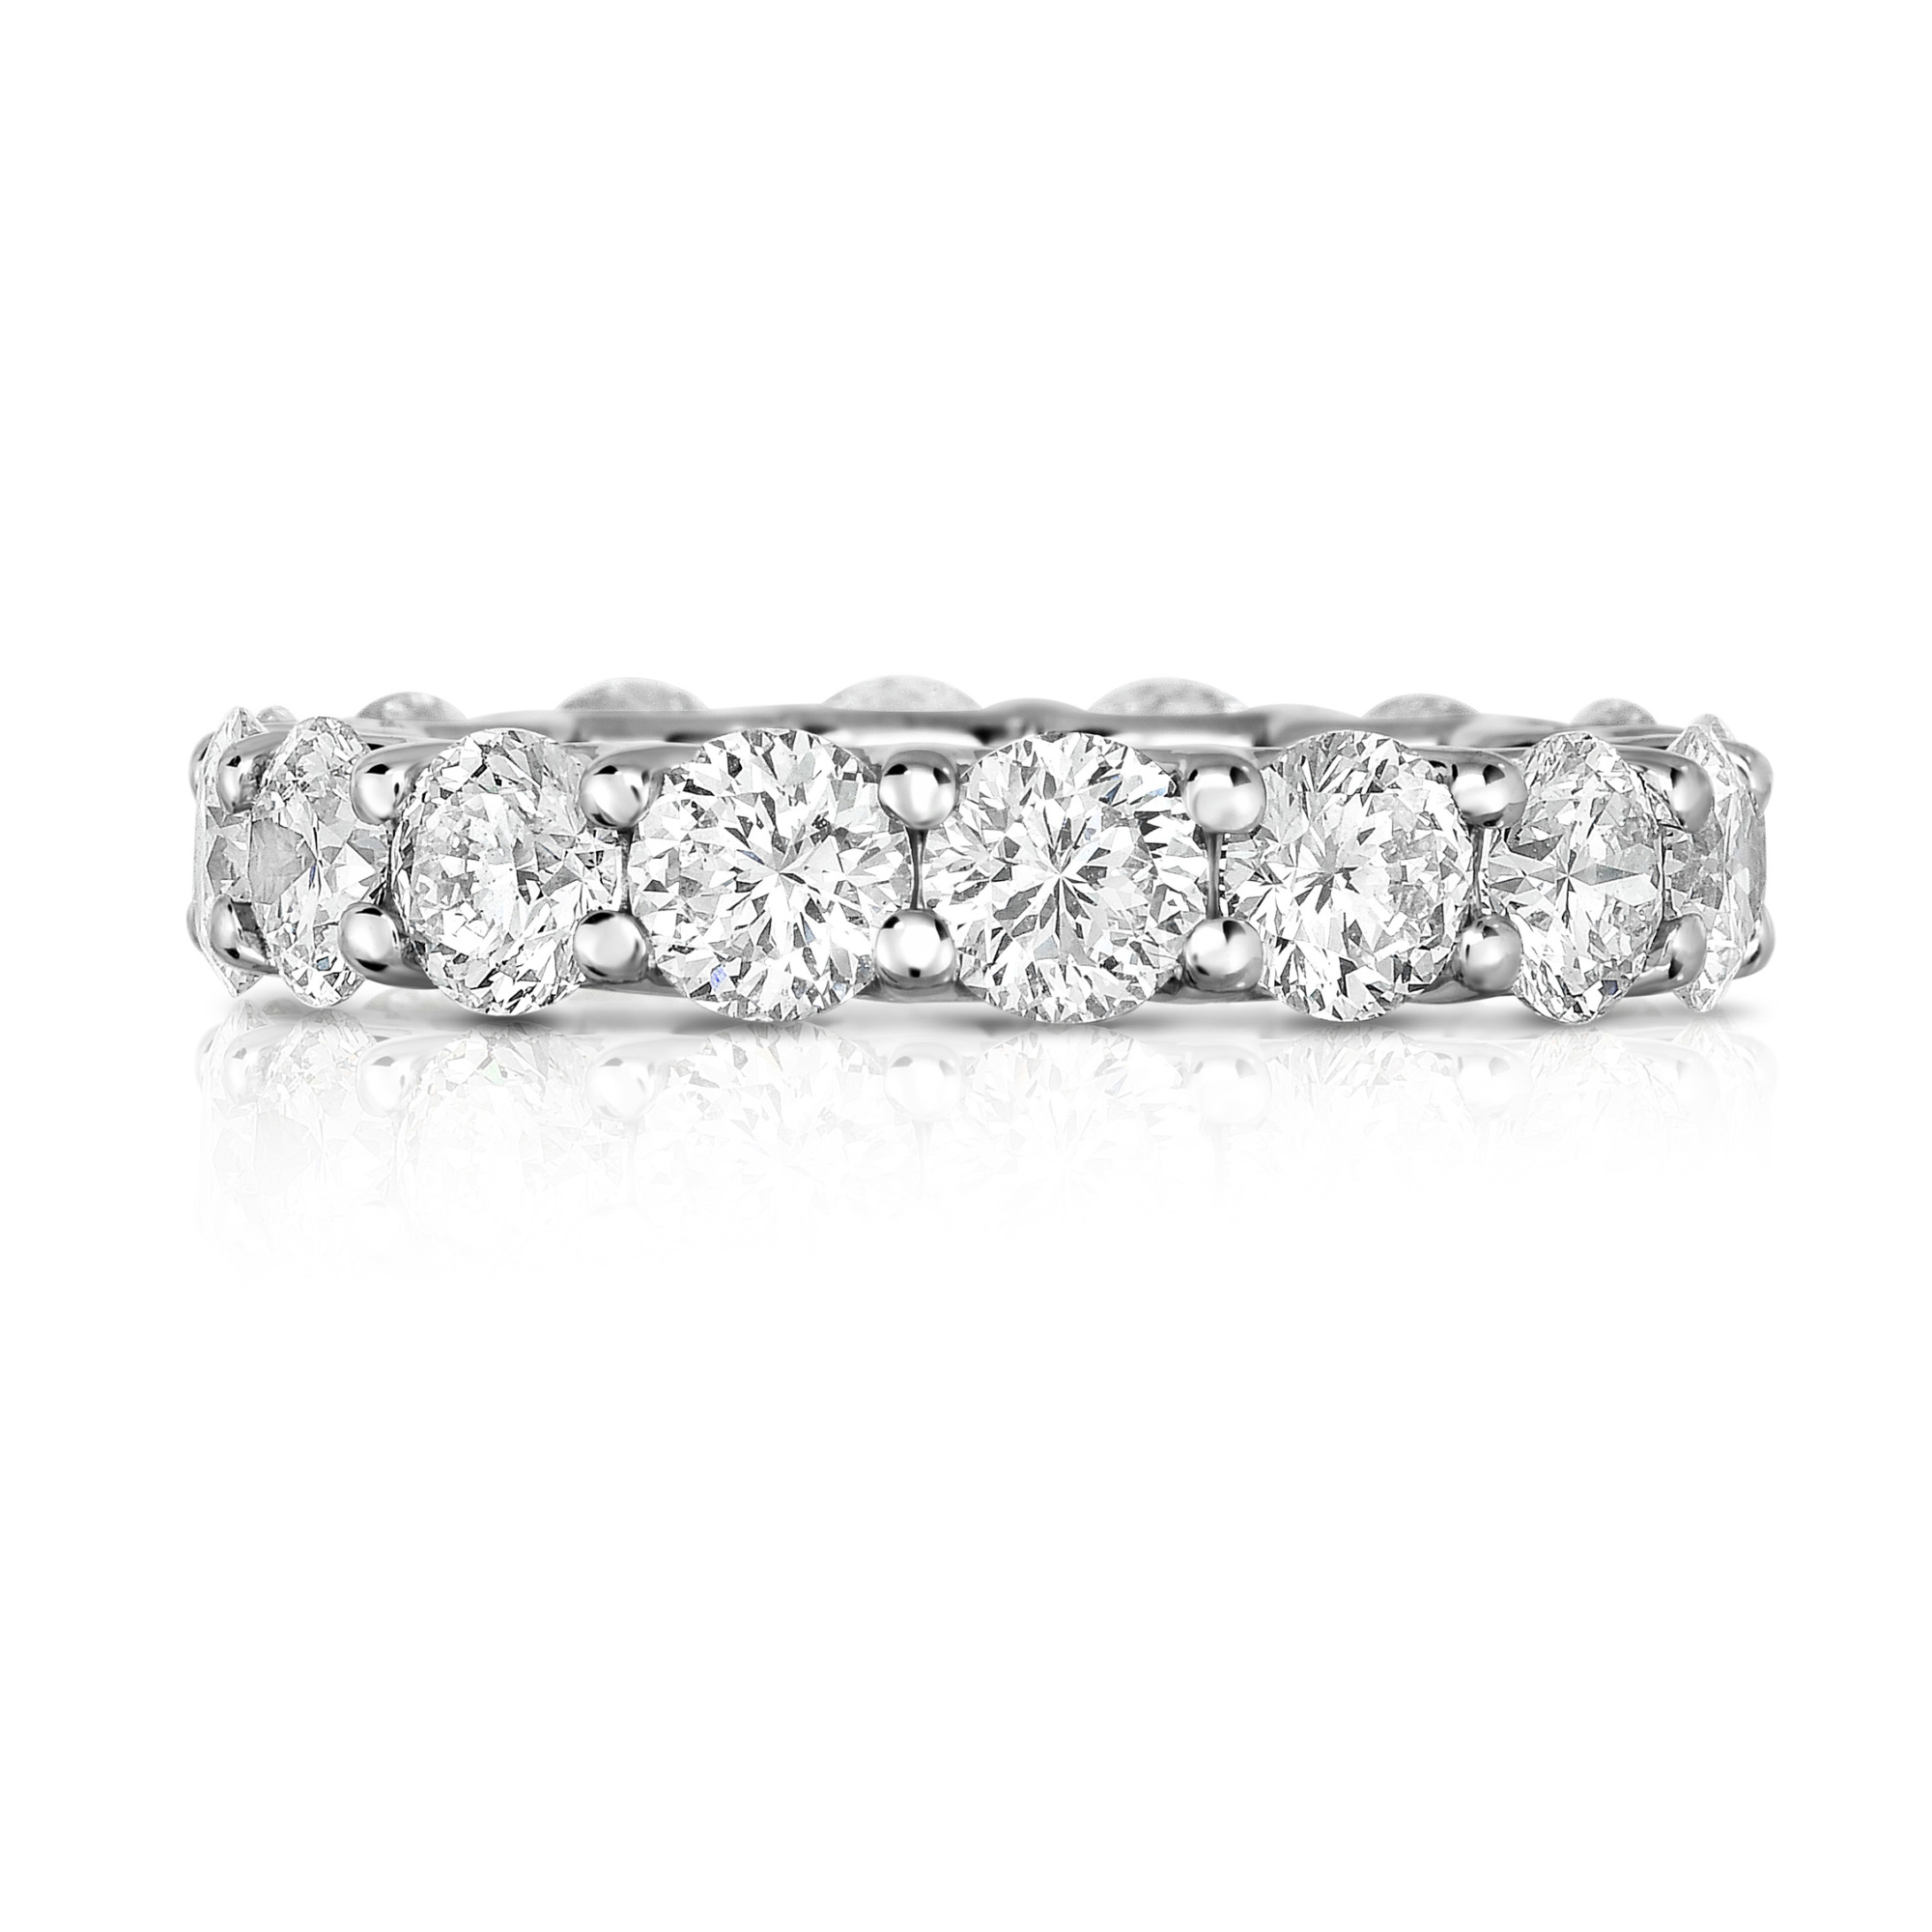 Cento 18K White Gold 2.76cts  Diamonds Gold Ring with Stones 2064W65VF285